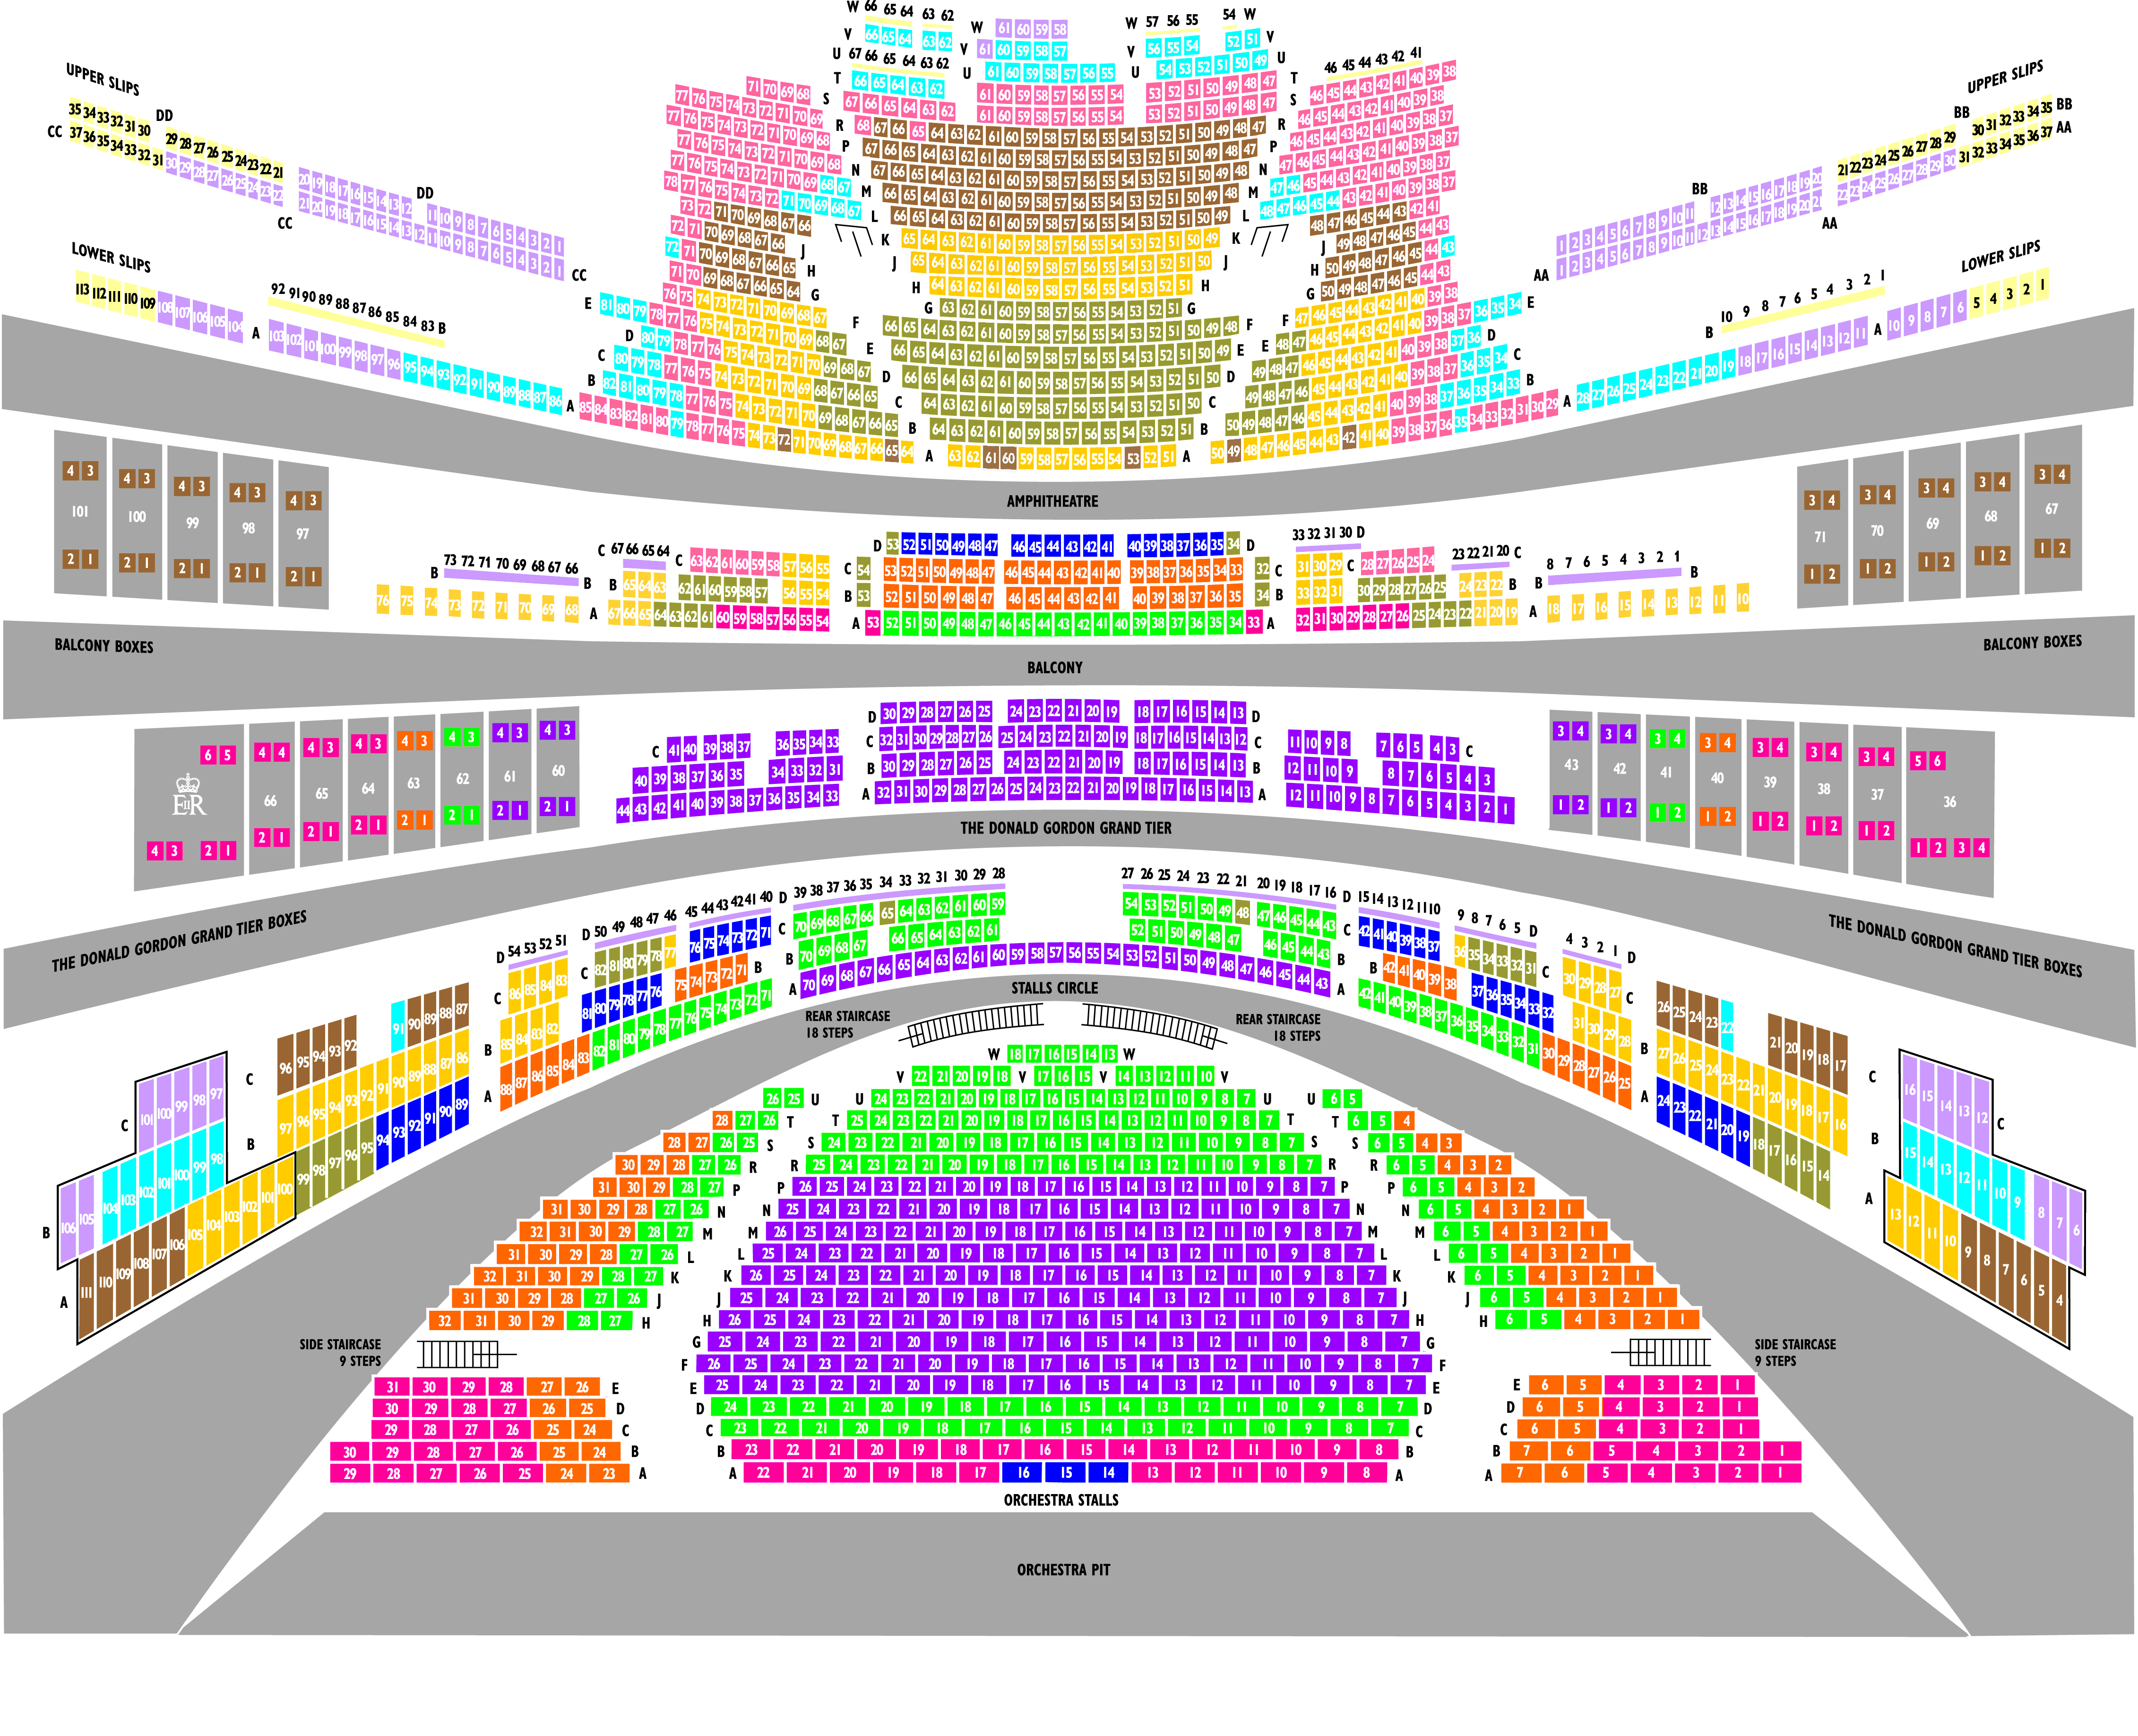 royal opera house seating plan review royal house plans with